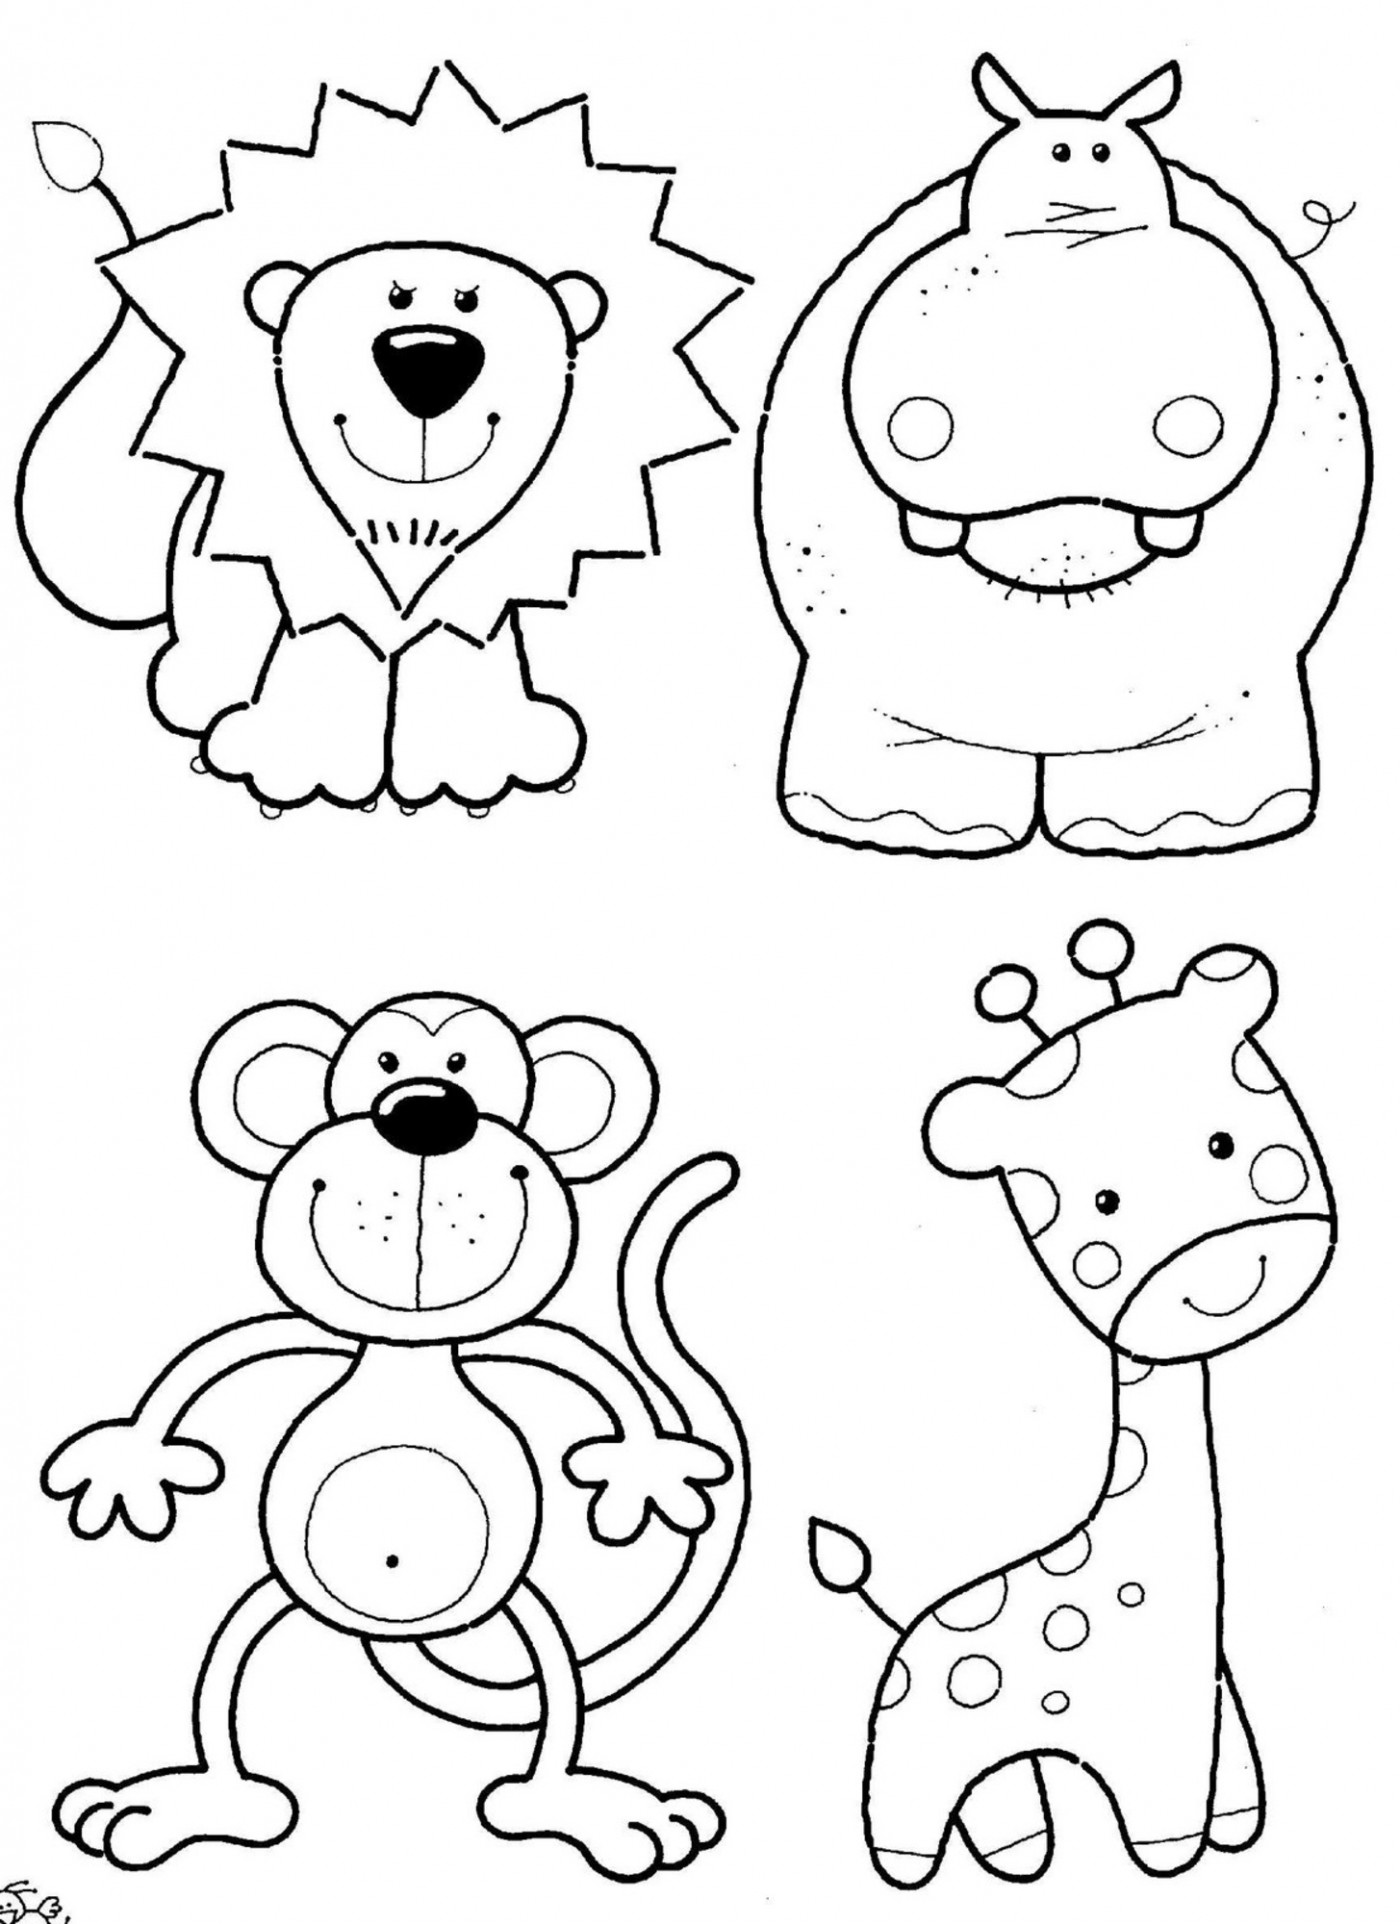 animal coloring page coloring pages animals dr odd coloring animal page